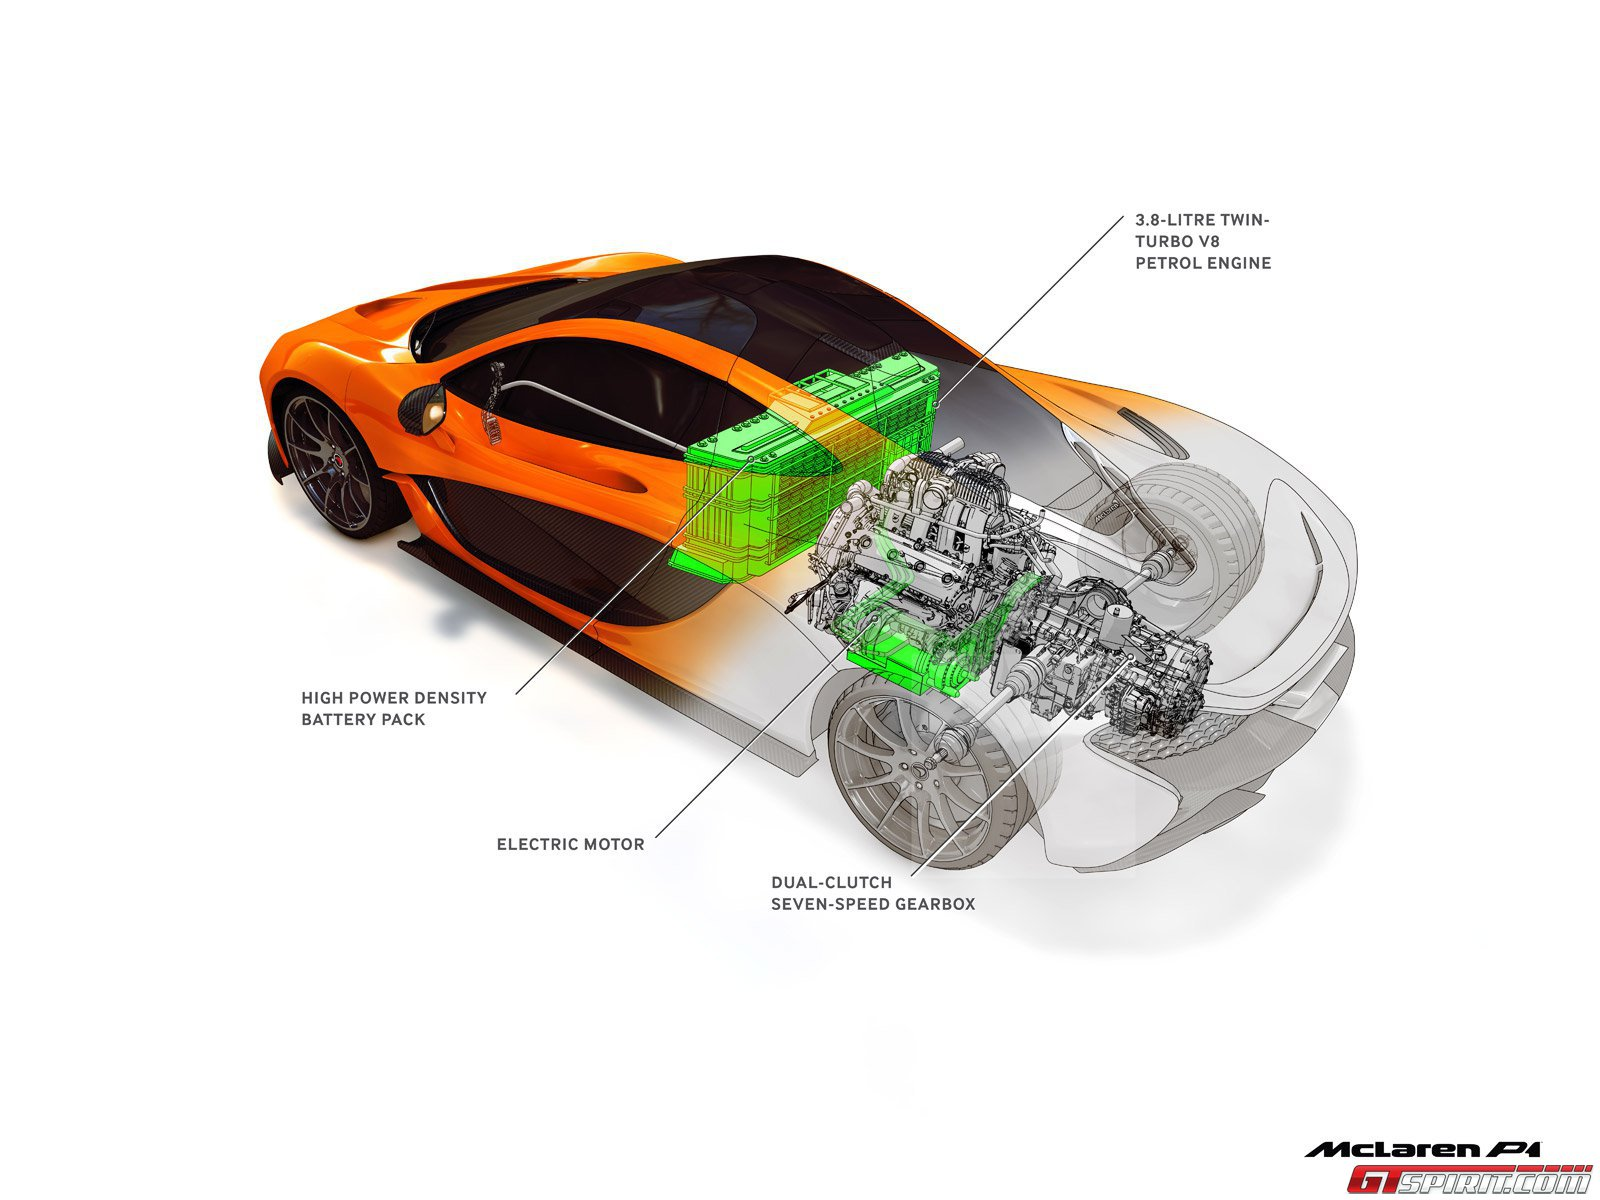 Mclaren P1 Comes With 916hp 38 Litre V8 And Electric Motor Bugatti Veyron Engine Diagram Car